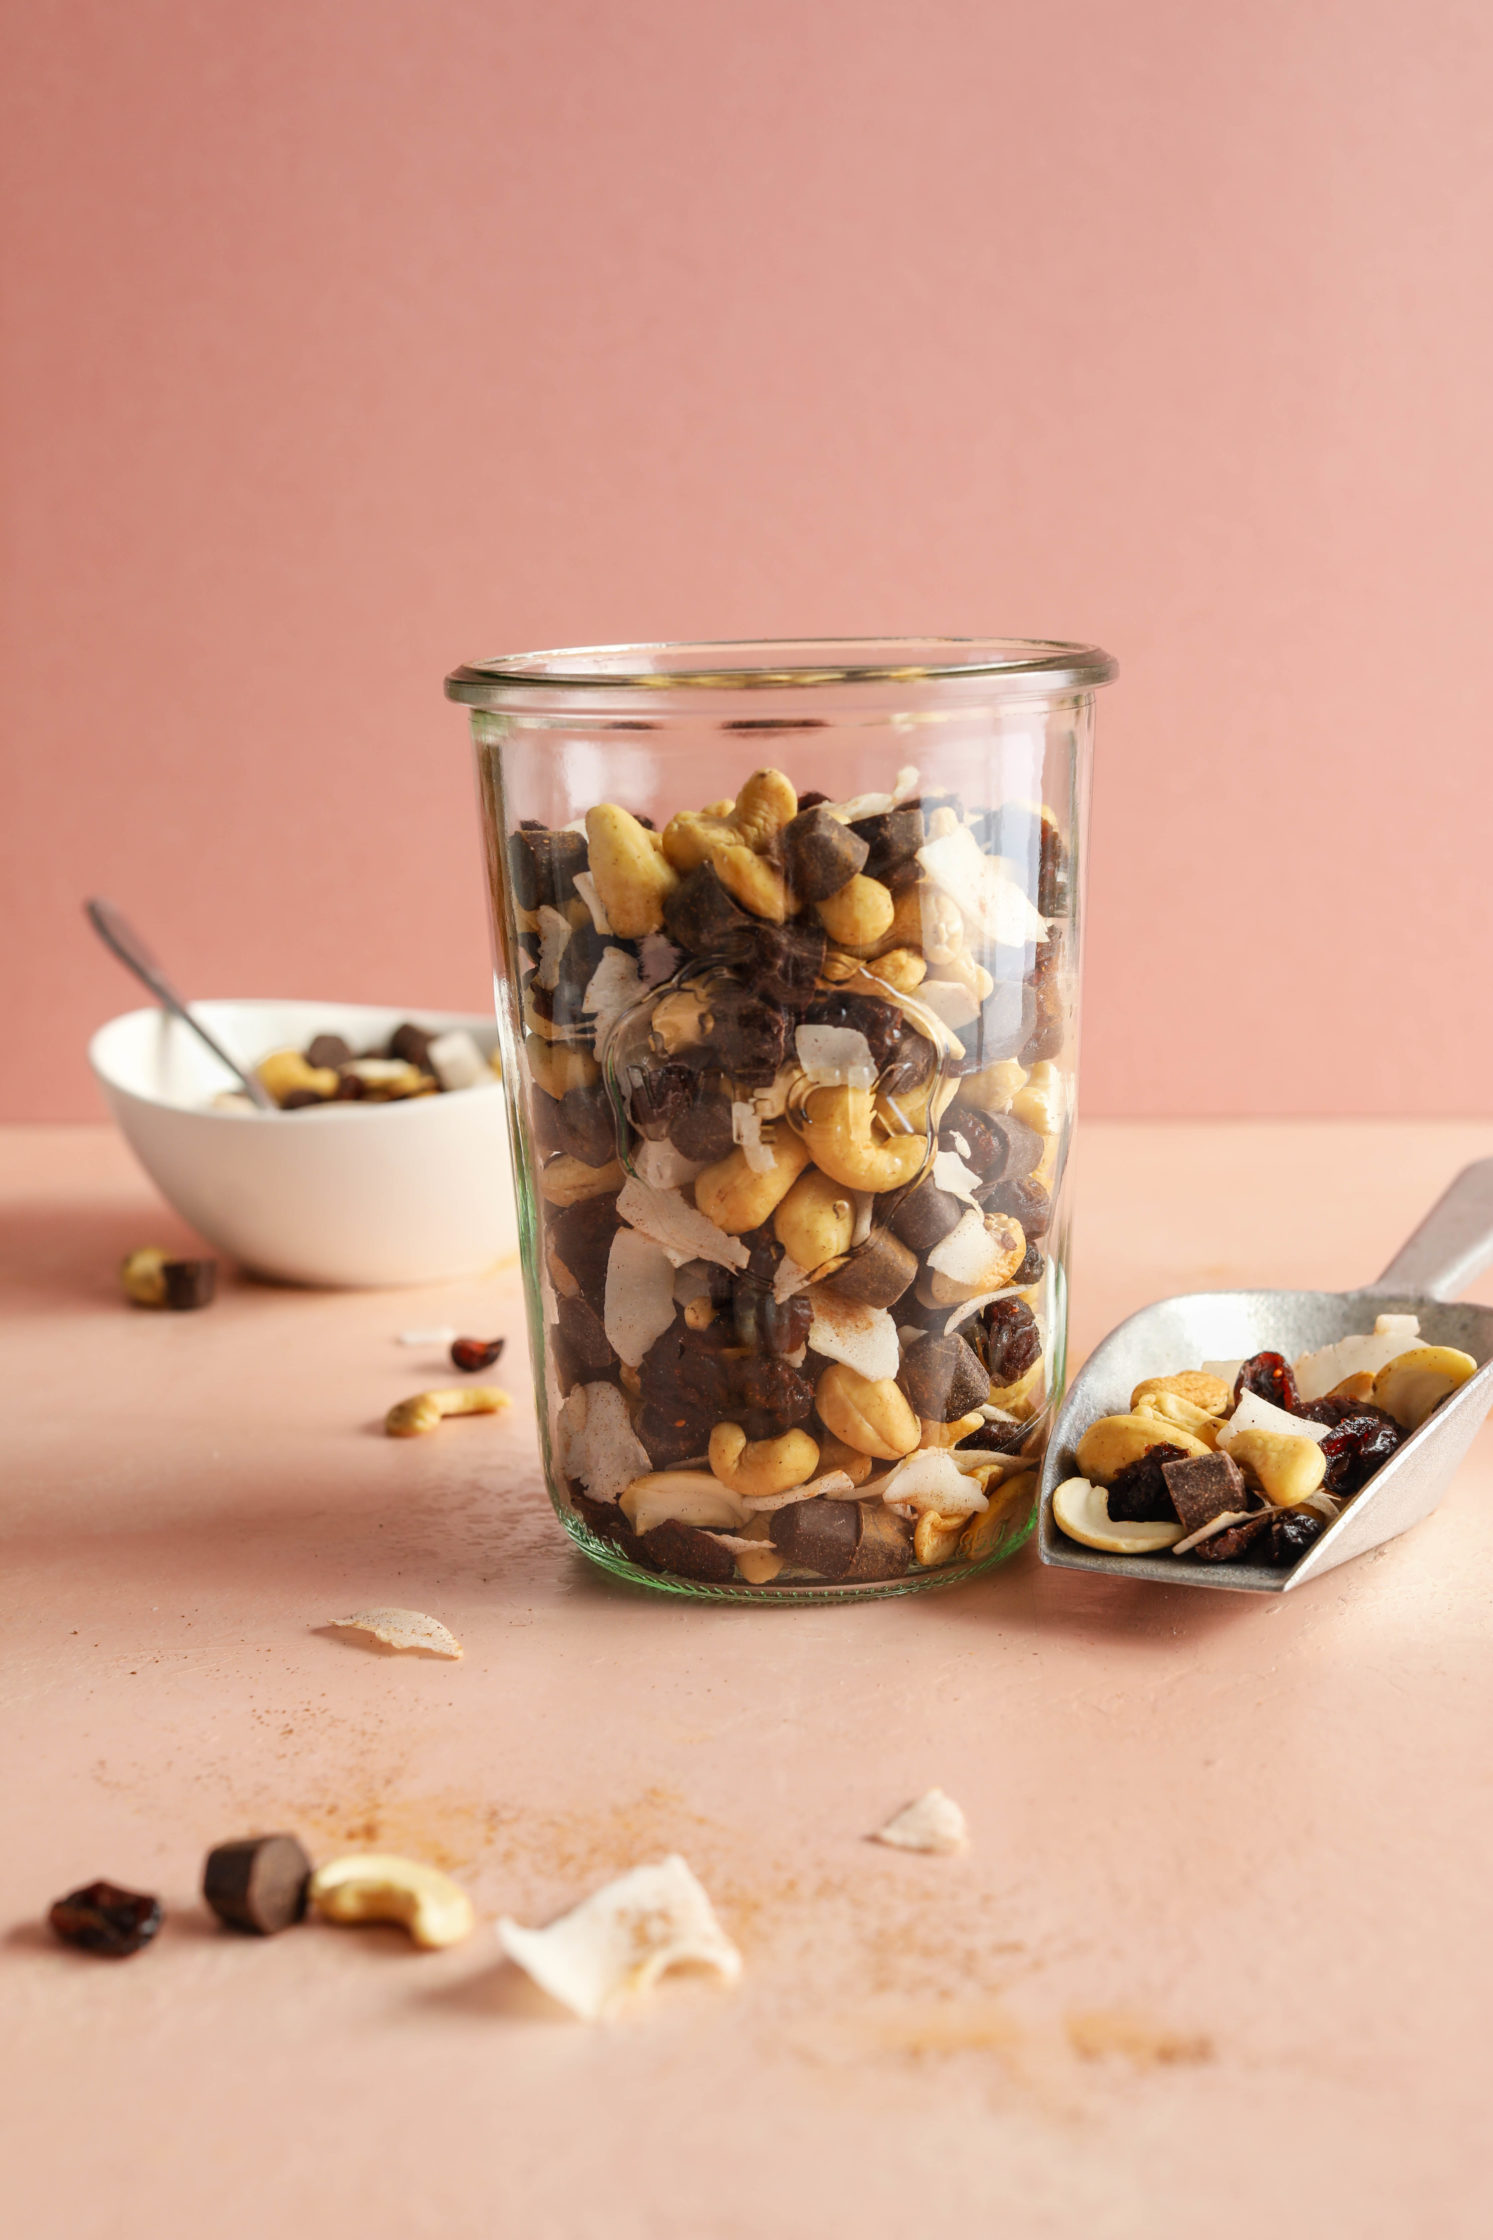 My Go-To Trail Mix by Flora & Vino